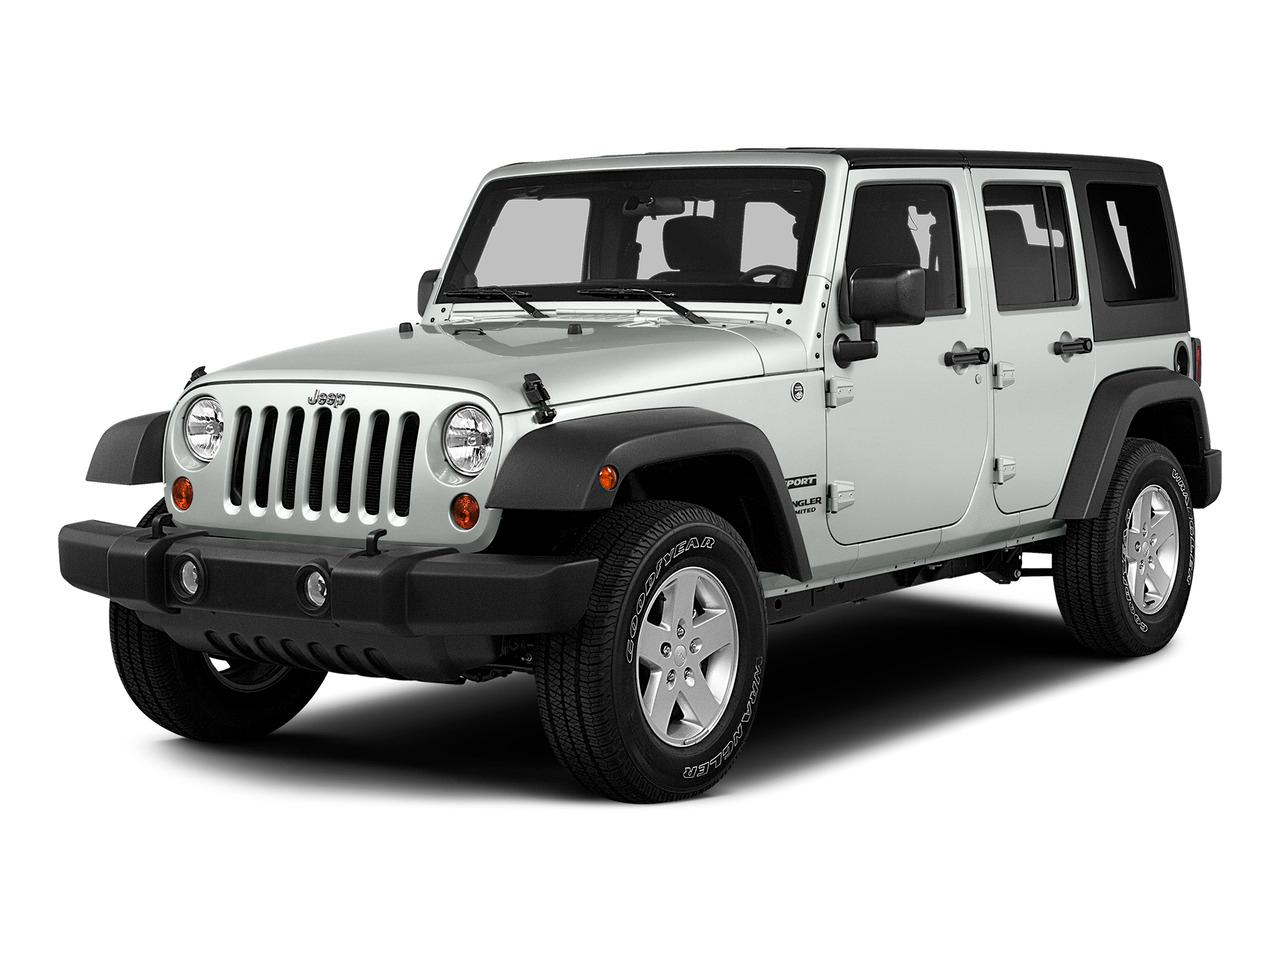 2015 Jeep Wrangler Unlimited Vehicle Photo in Portland, OR 97225